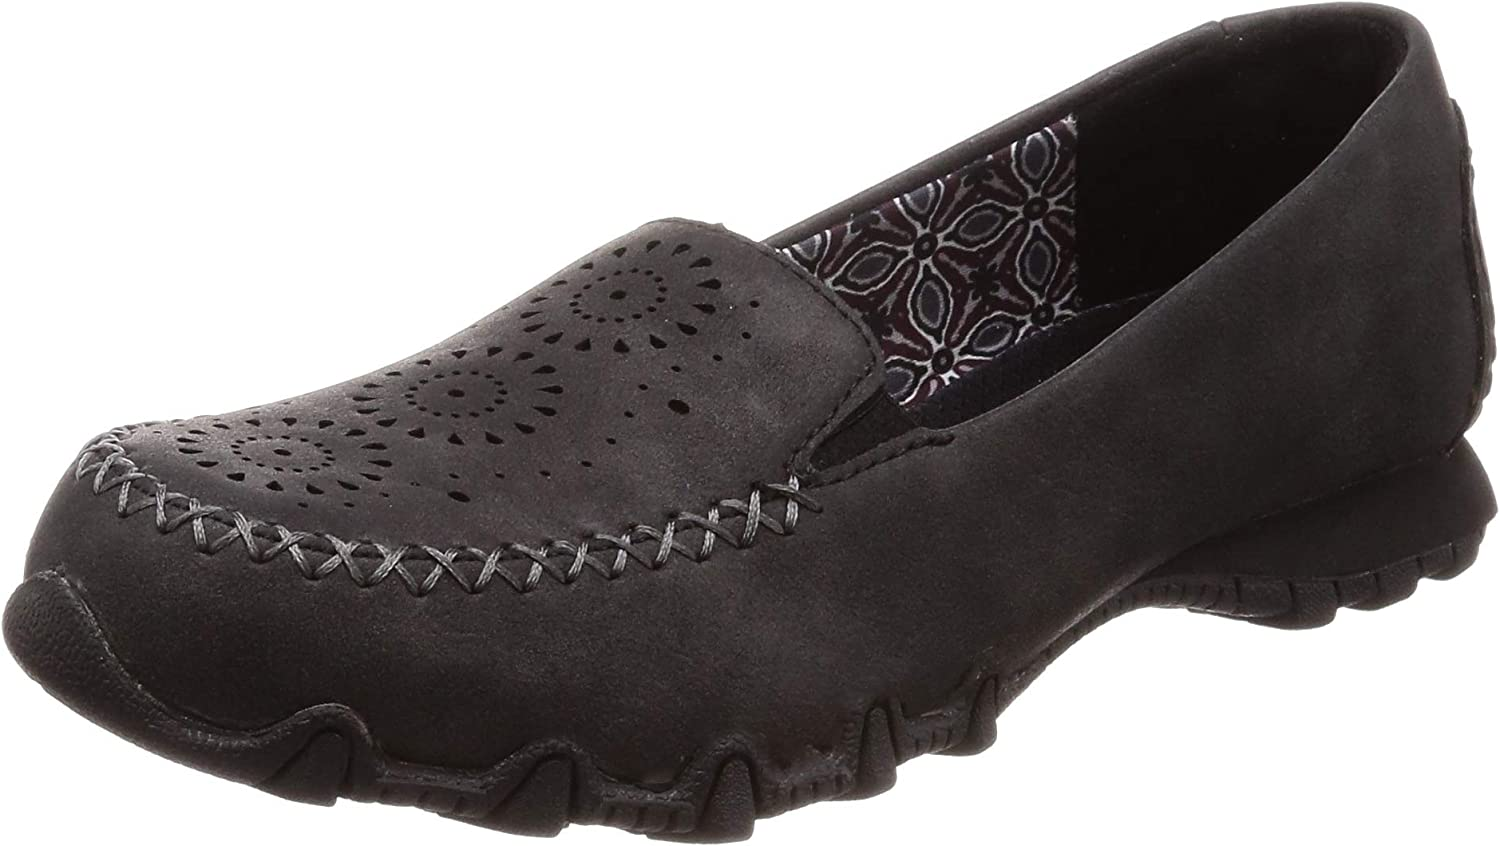 Skechers Relaxed Fit Bikers Lass Womens Slip On Loafers Black